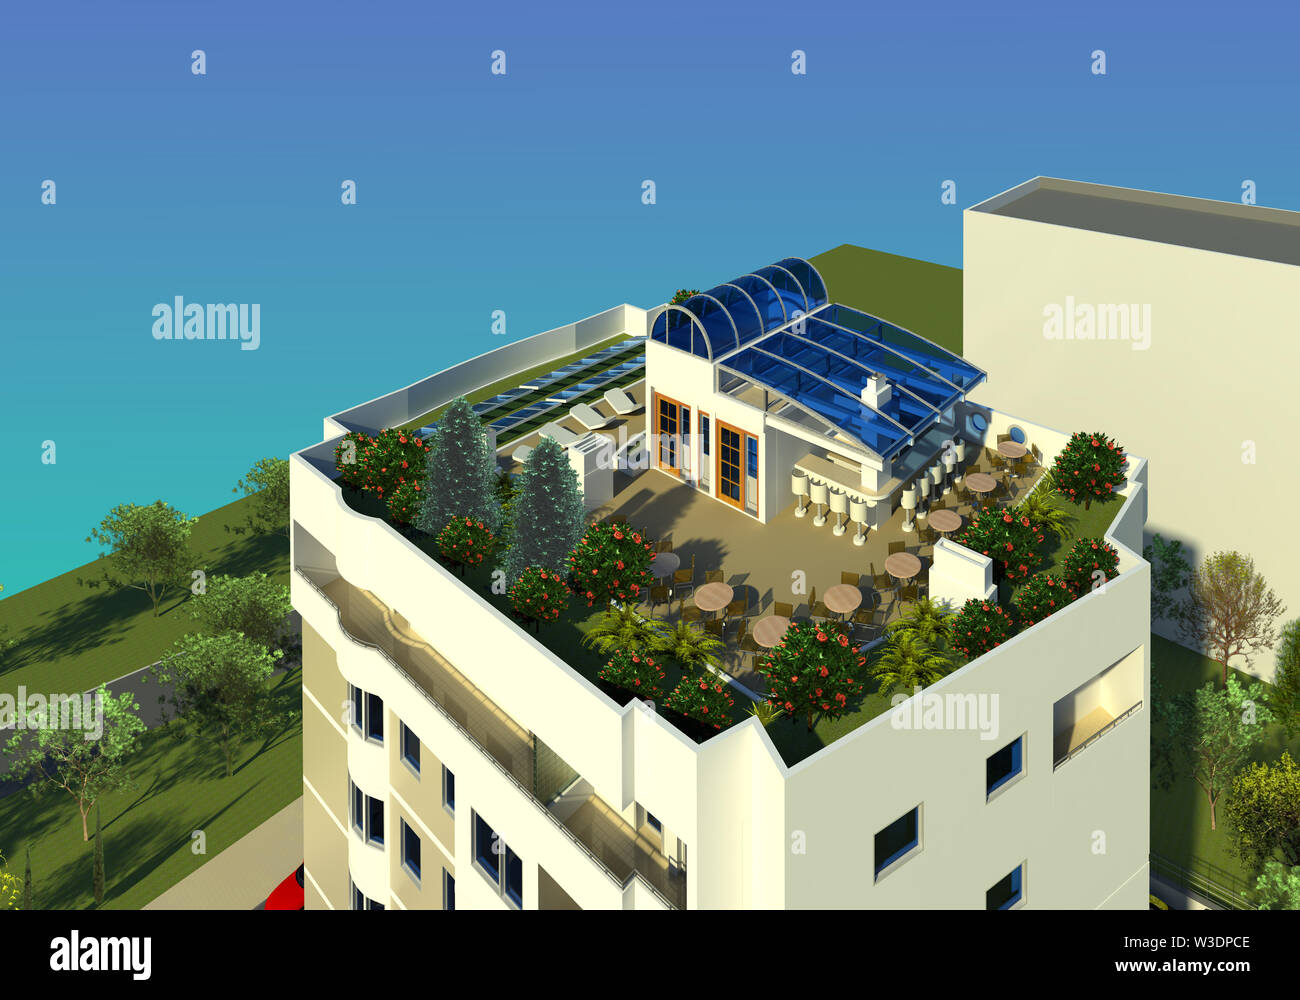 Roof Top Green Area Architectural Model Design 3d Illustration 1 Residential Building Roof Terrace And Recreation Area Perspective Collection Stock Photo Alamy